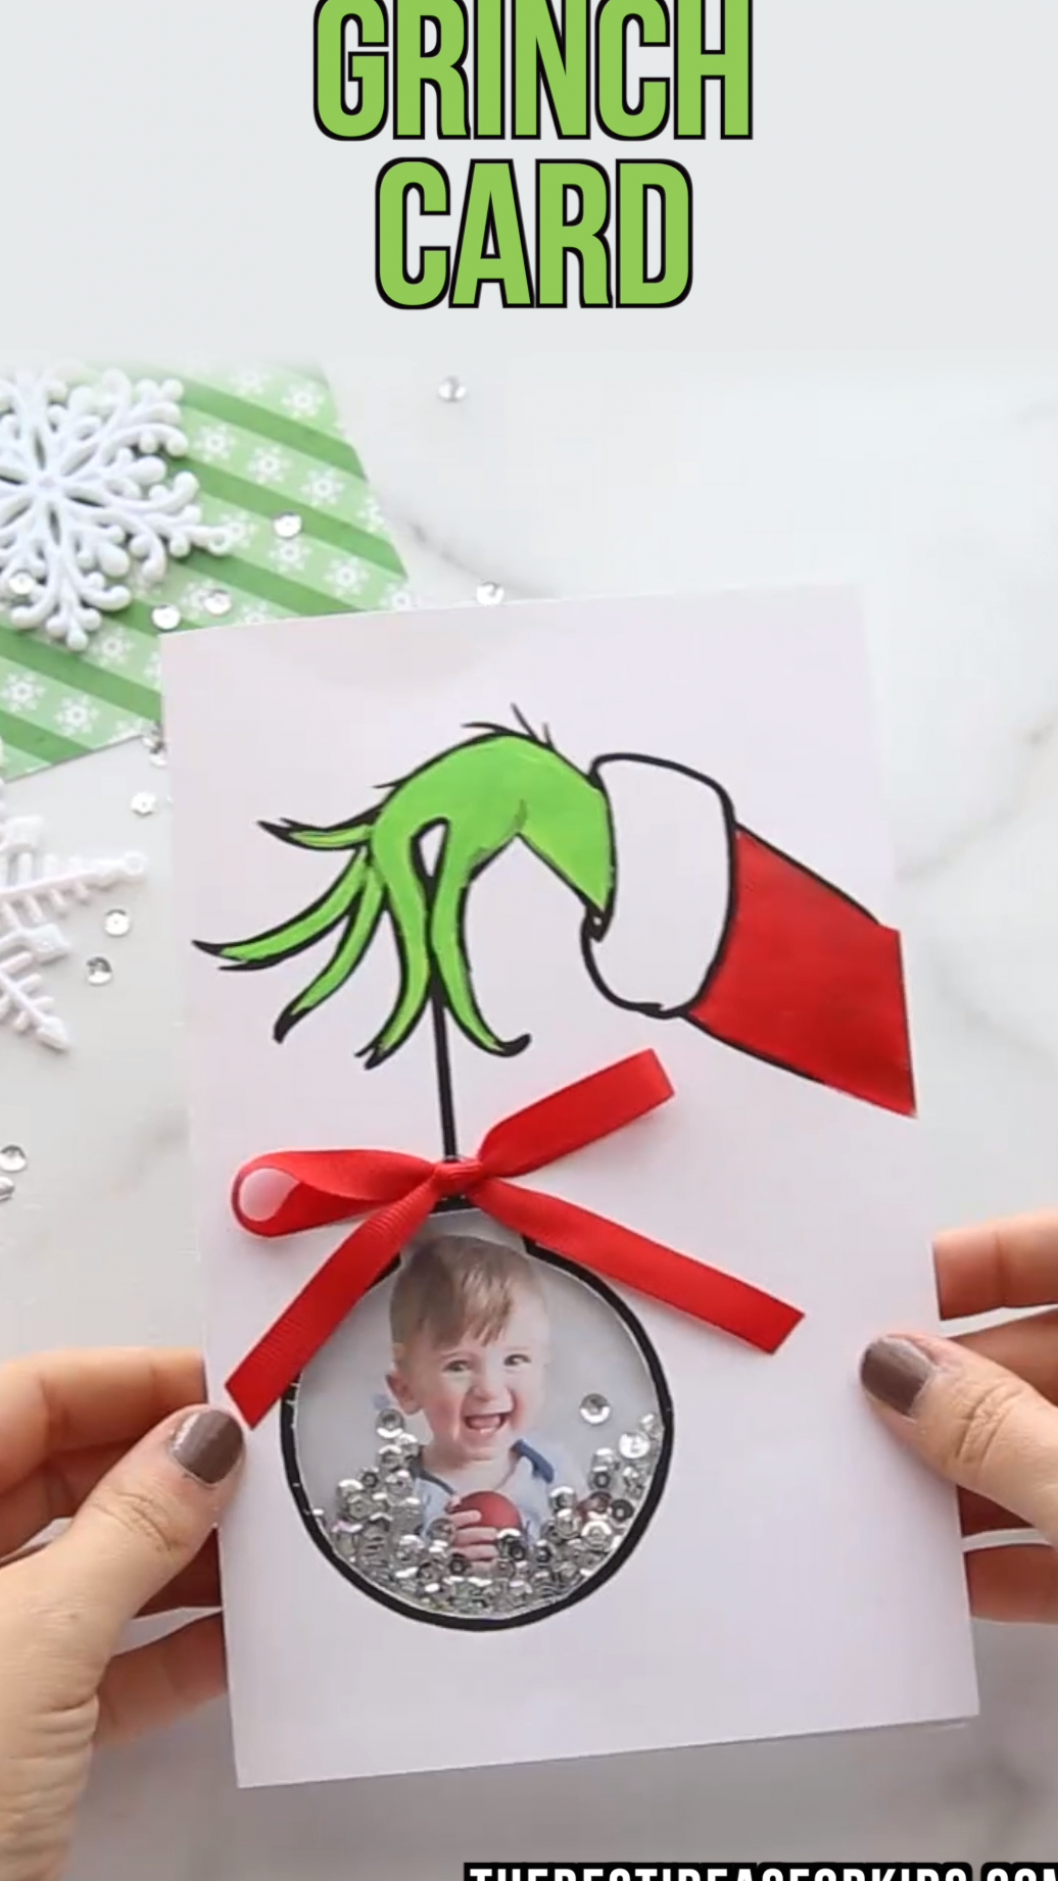 Grinch Card Christmas Card Crafts Kids Christmas Christmas Cards